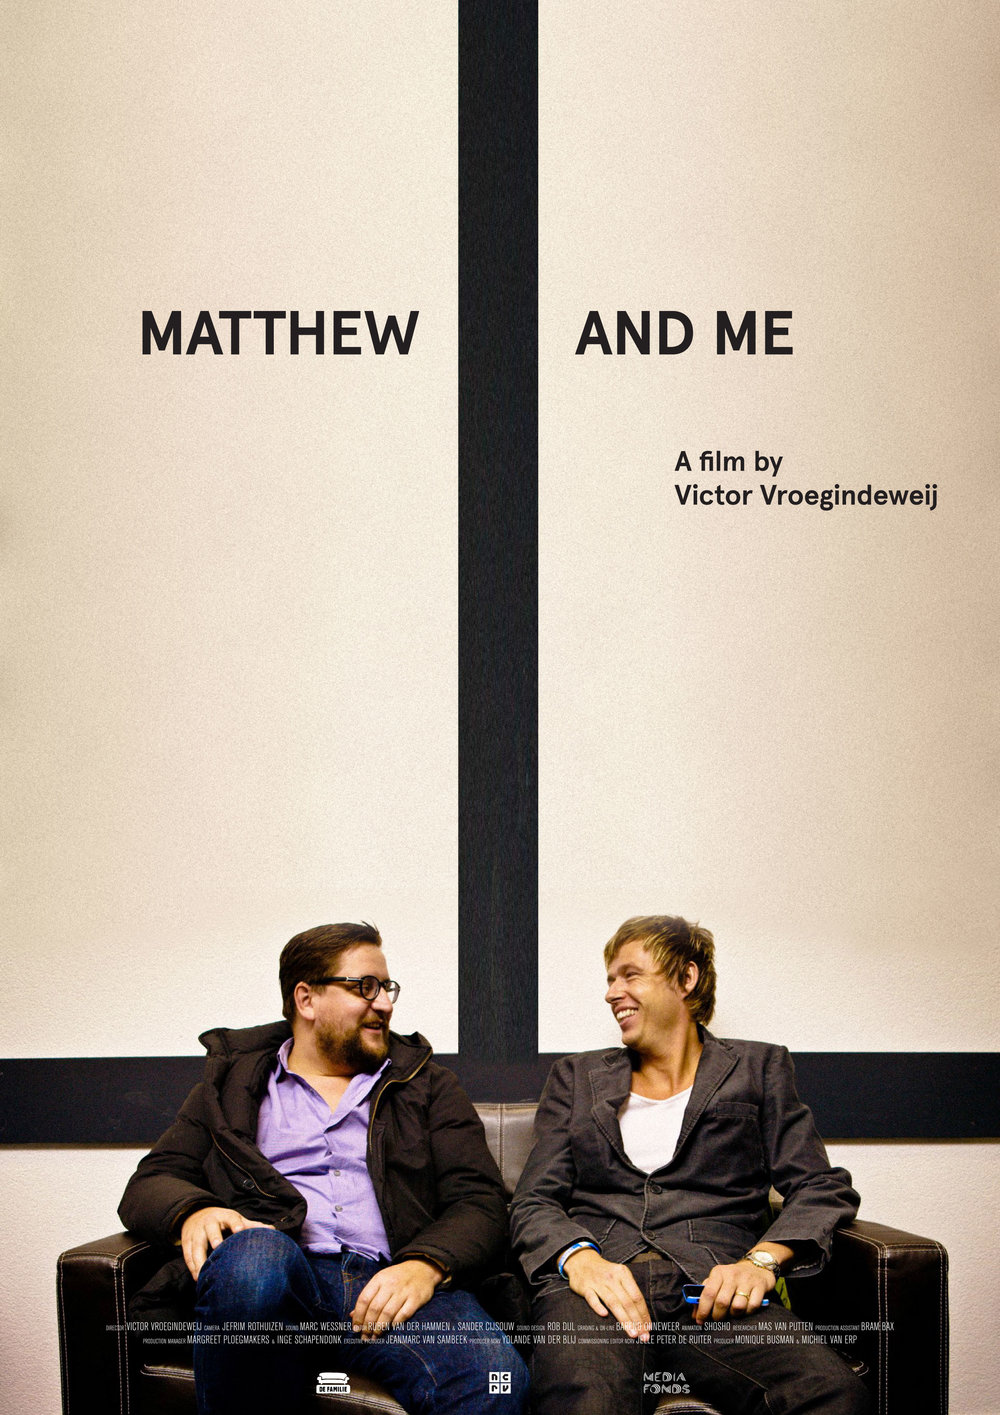 Matthew and me - A couple of years back I was fascinated with pentecostalism, which I consider the future of the Christian faith. So I made this doc about Mattheus, a leader in this world. By the way, I'm a nihilist. I believe in noooothing.